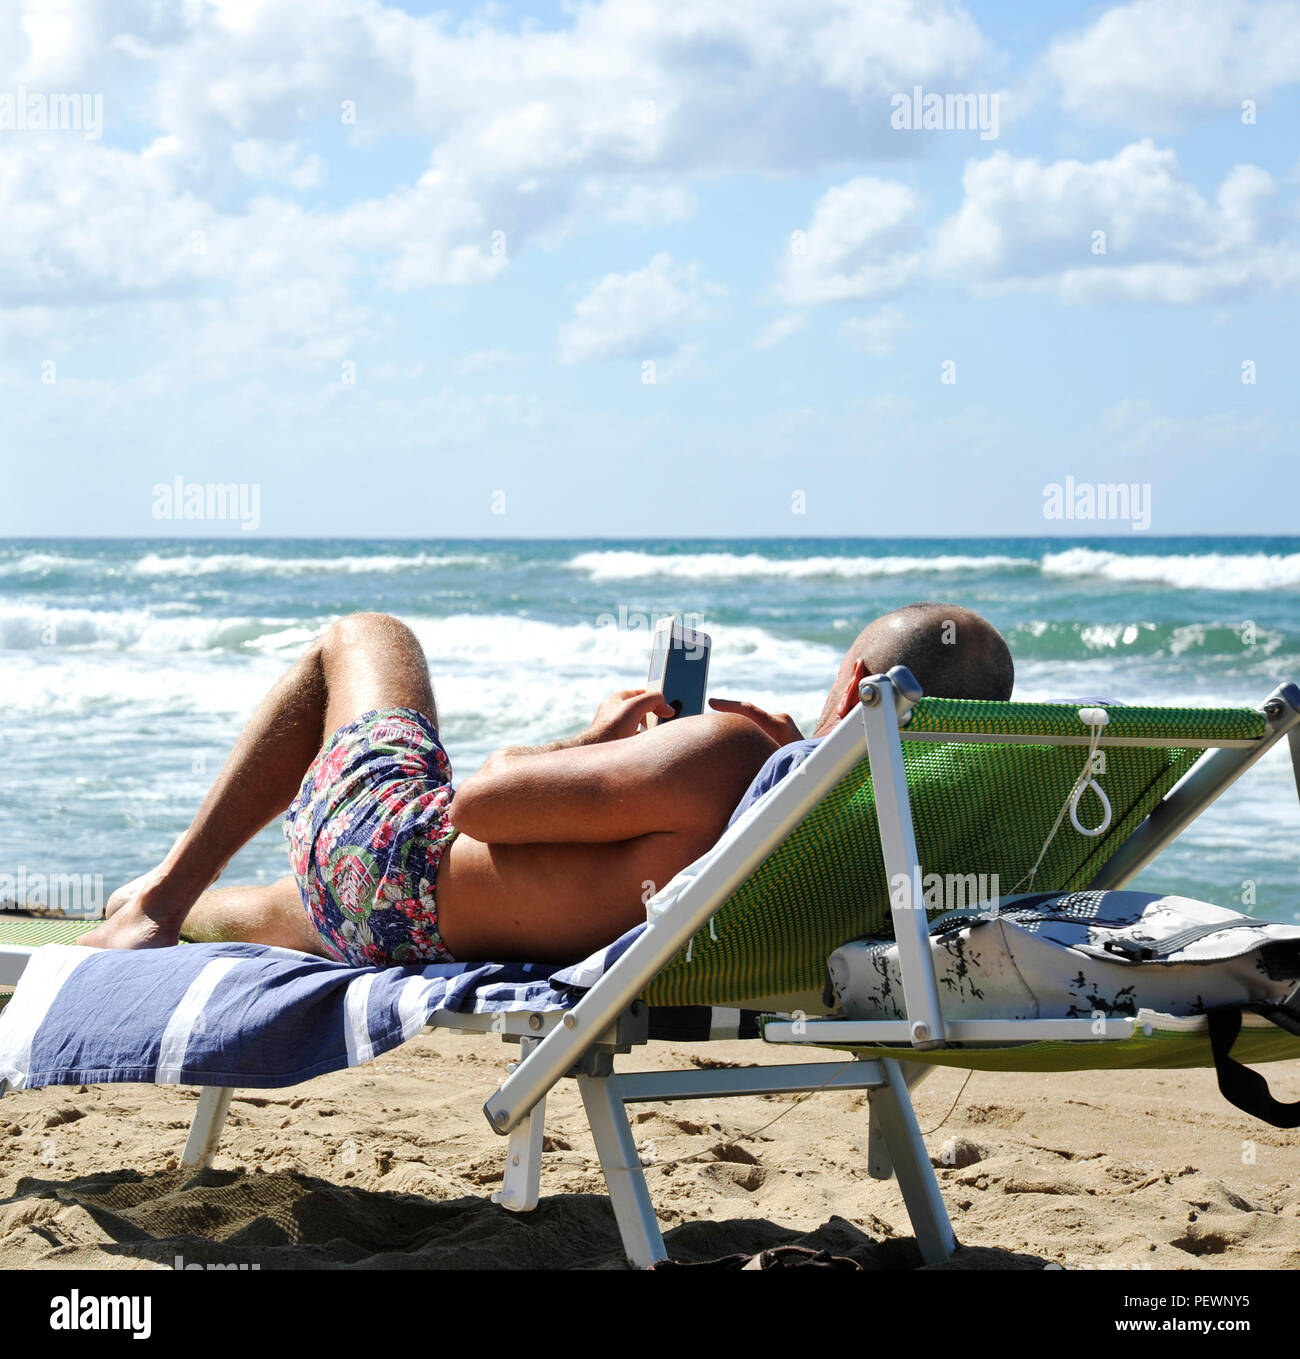 Man at the beach lying on the sunbed looking at the smartphone. In the background two men contemplate the sea. There is contemplation and contemplatio - Stock Image